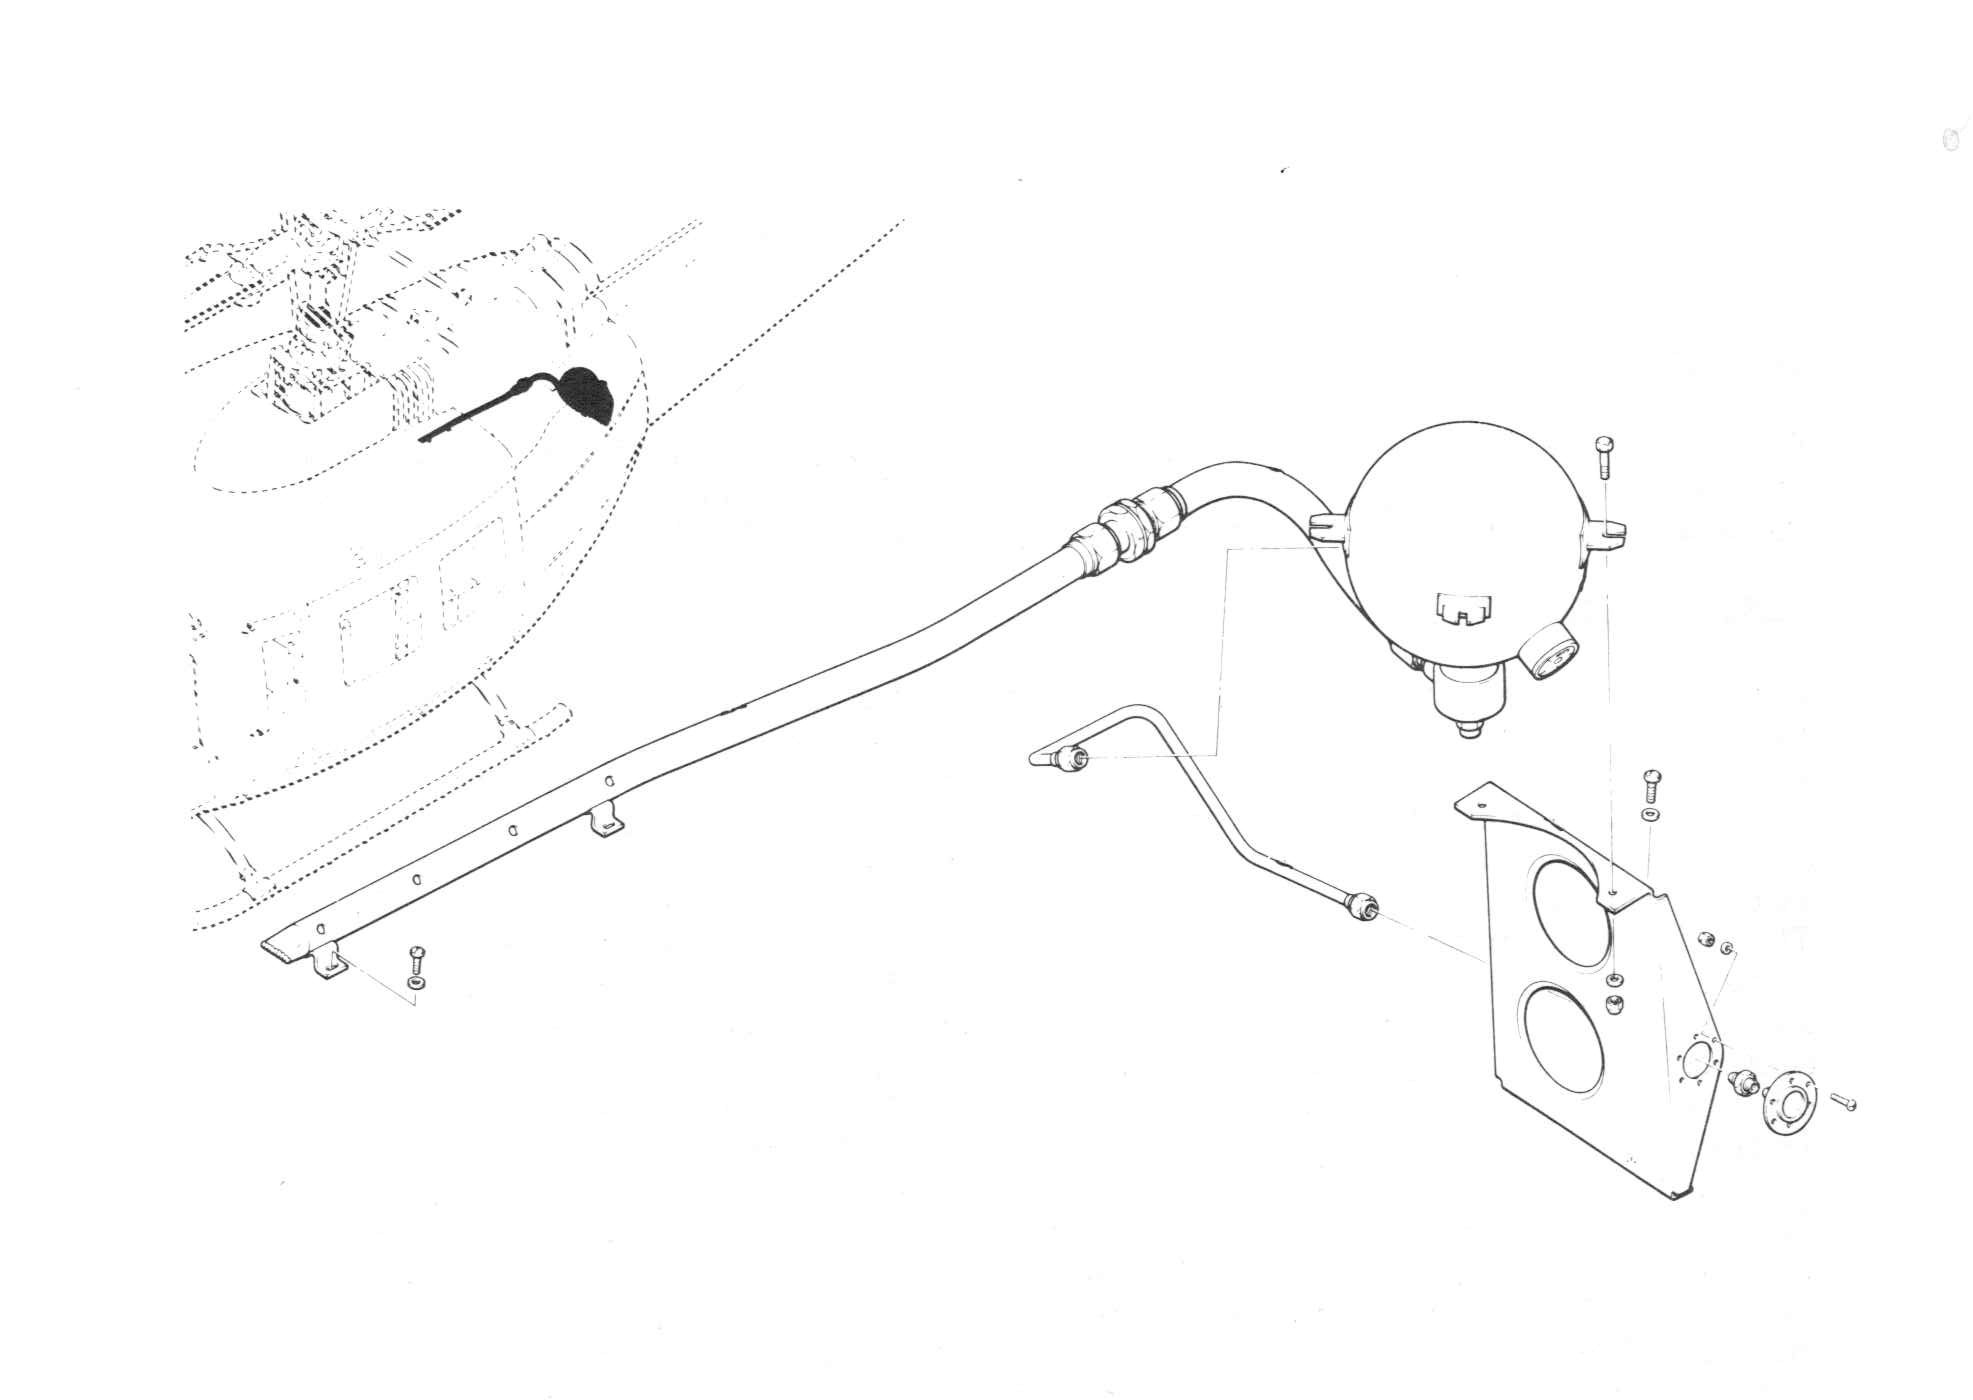 Engine oil system installation · engine orientation diagram t5313b · exploded view of helicopter